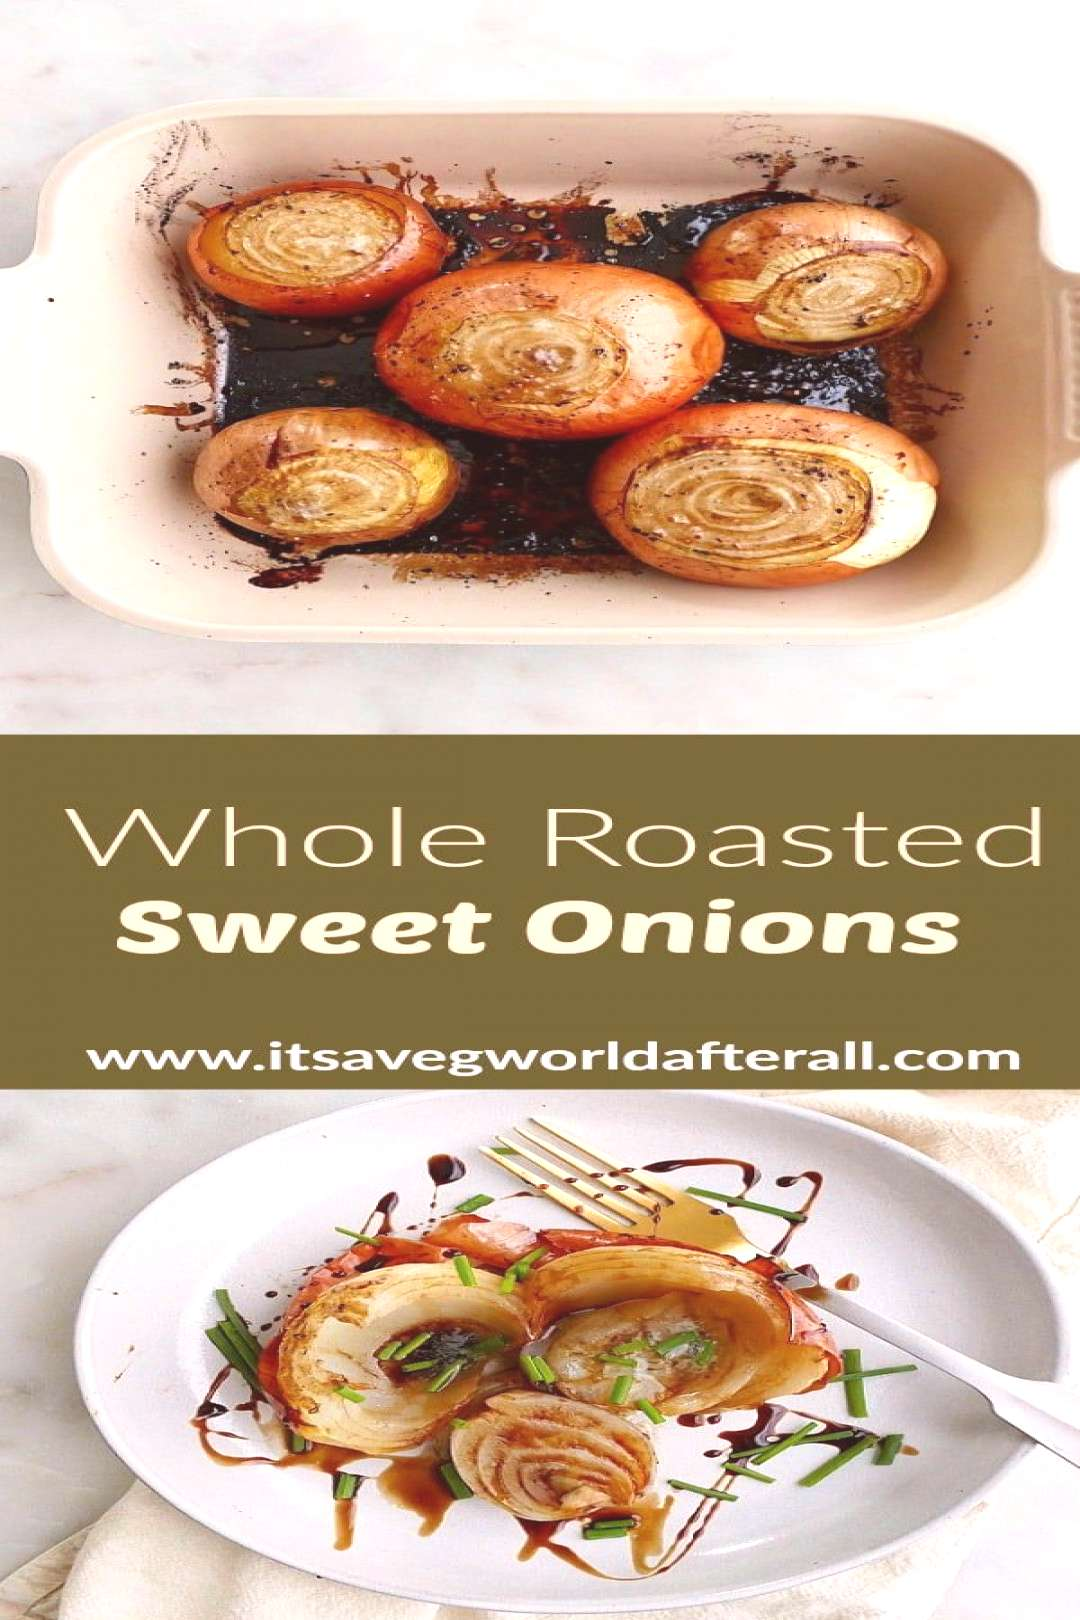 Whole Roasted Onions - these creamy, decadent onions are baked whole in the oven to perfection! The